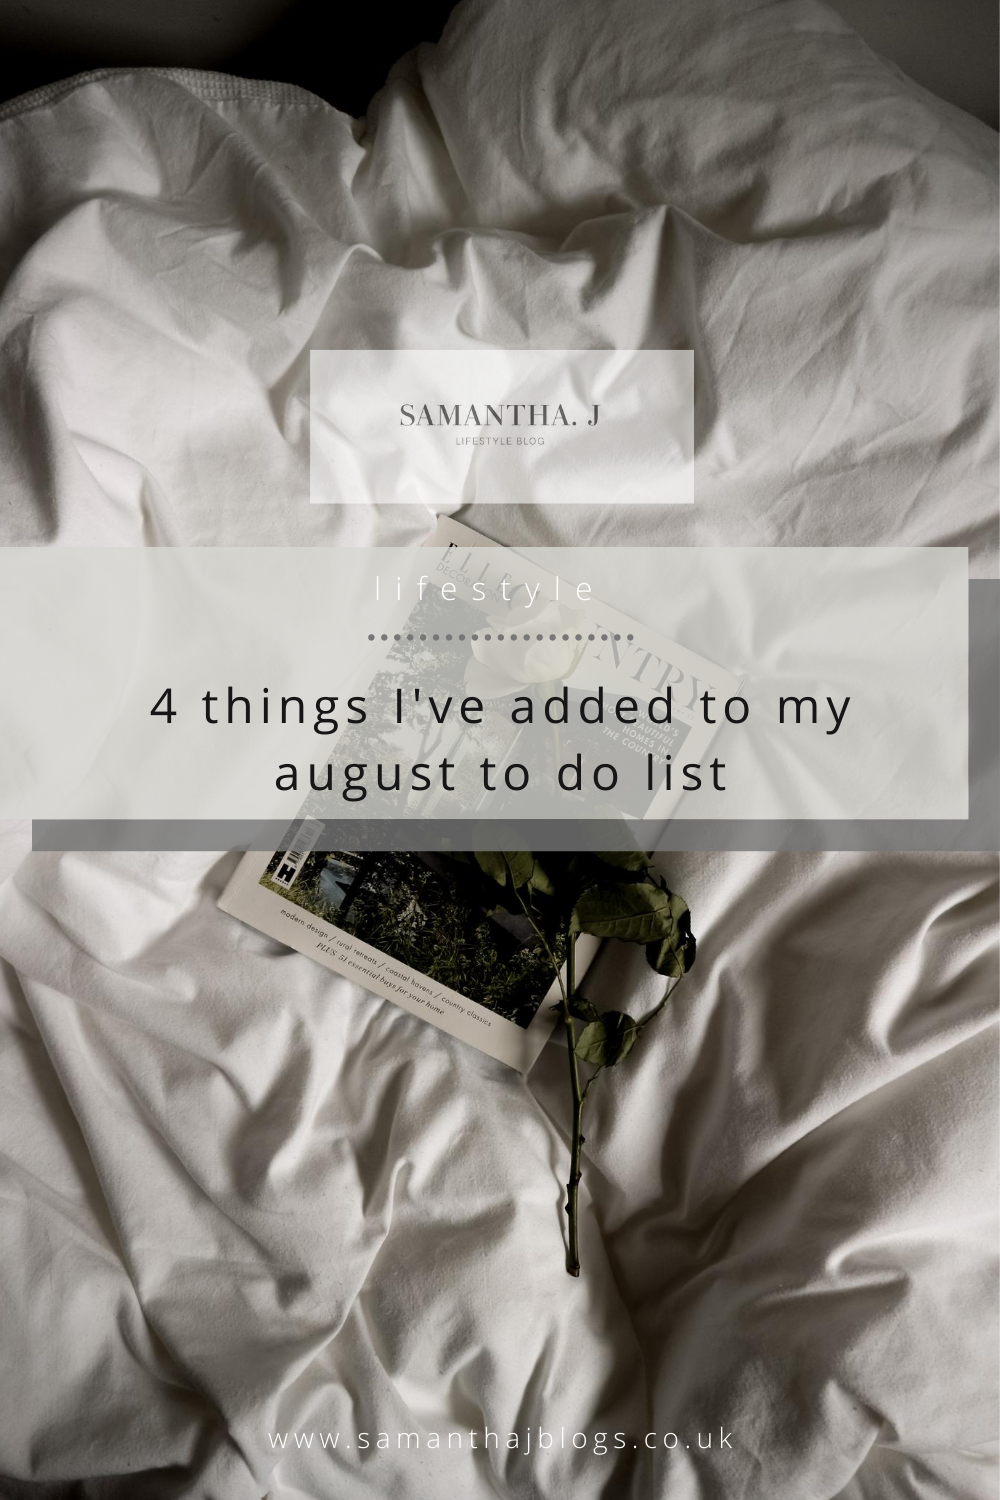 4 things I've added to my august to do list